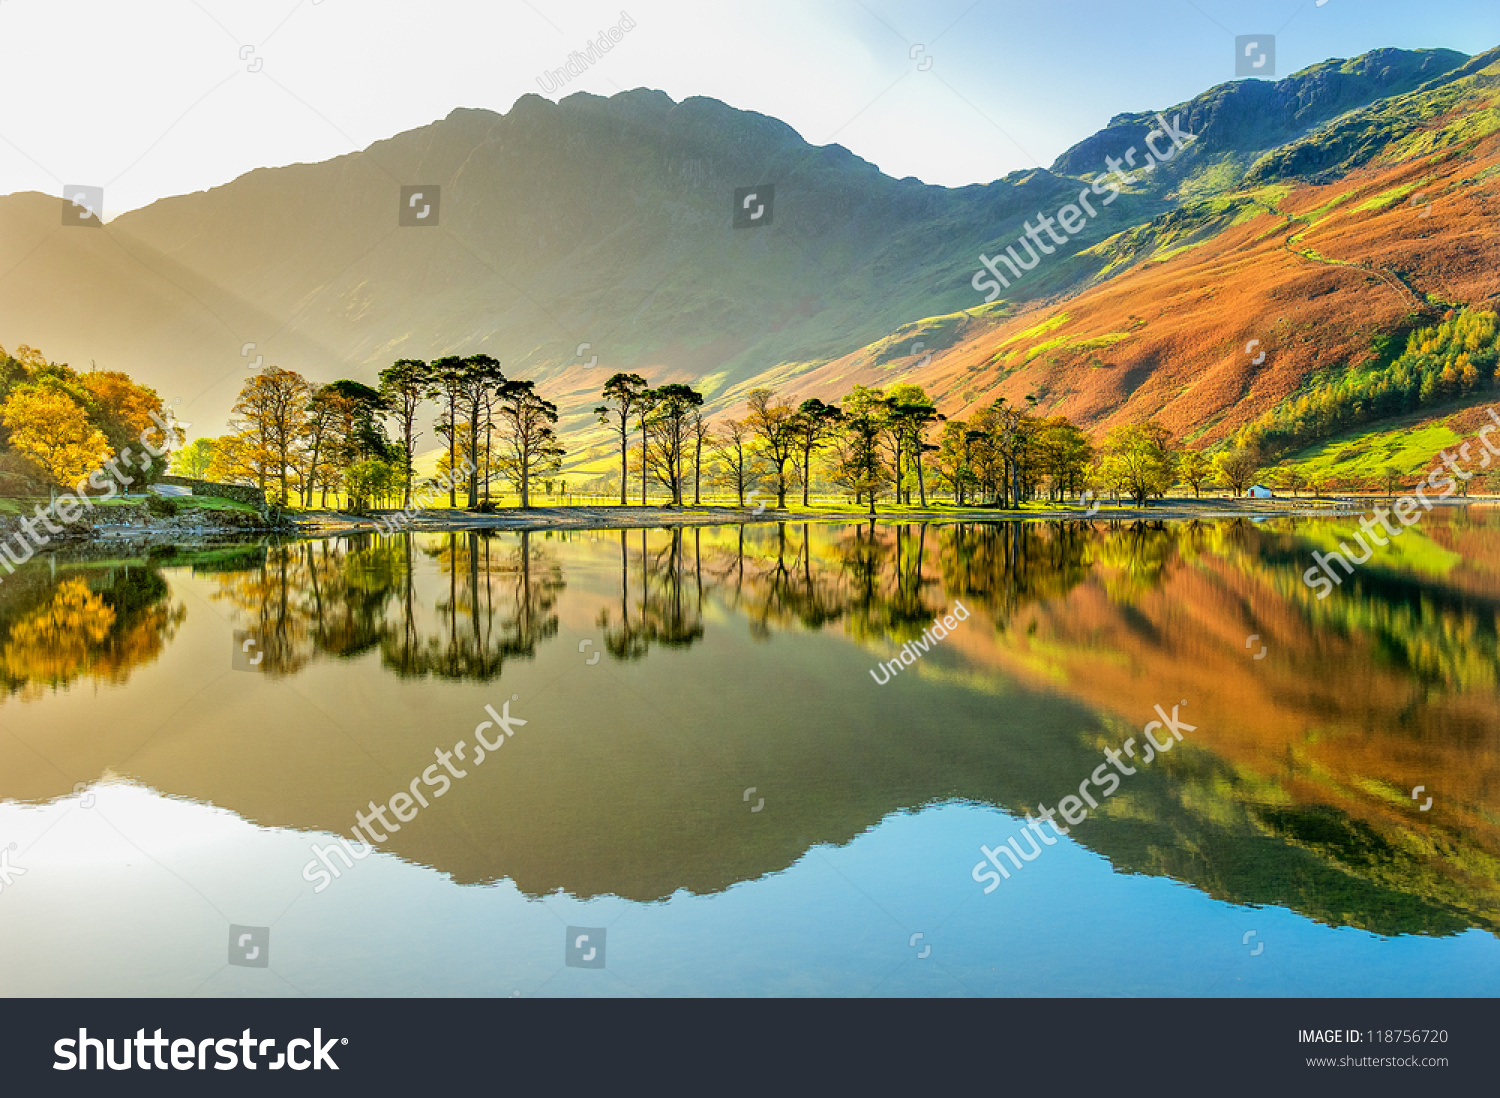 Buttermere early morning walk. #118756720